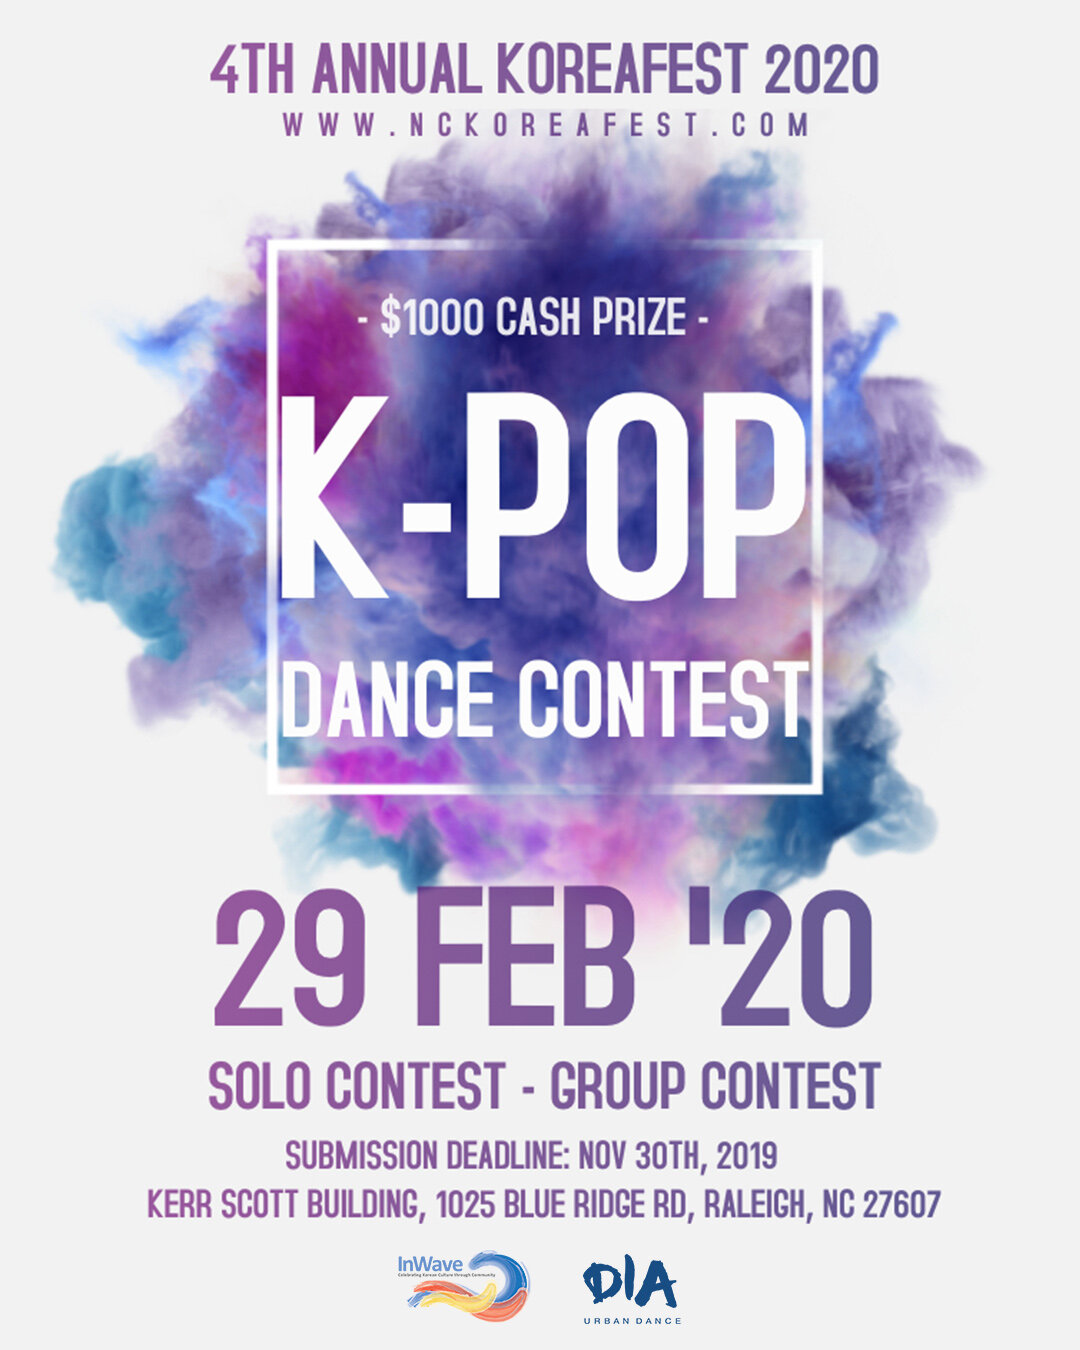 K-Pop Dance Contest - We are happy to announce that DIA Dance Studio will be our sponsor for KoreaFest 2020 K-Pop Dance contest! They will be organizing the dance contest this year!DIA Dance Studio is a a rising dance studio in North Carolina, USA. Founded in 2017, DIA have been hosting weekly dance workshops including urban dance, hip-hop, K-pop, locking, popping, waacking, and Afro beats. This season they will focus on bring in professional choreographers and instructors all over the world to North Carolina to share their love of dance. They also host seasonal K-pop themed events, and just hosted the very first K-pop Showcase in North Carolina this Summer! Their passion is to build a multicultural dance community that people can share dance, joy, friendship and love!Please check out their website for dance classes, workshops and events.www.diaurbandance.com